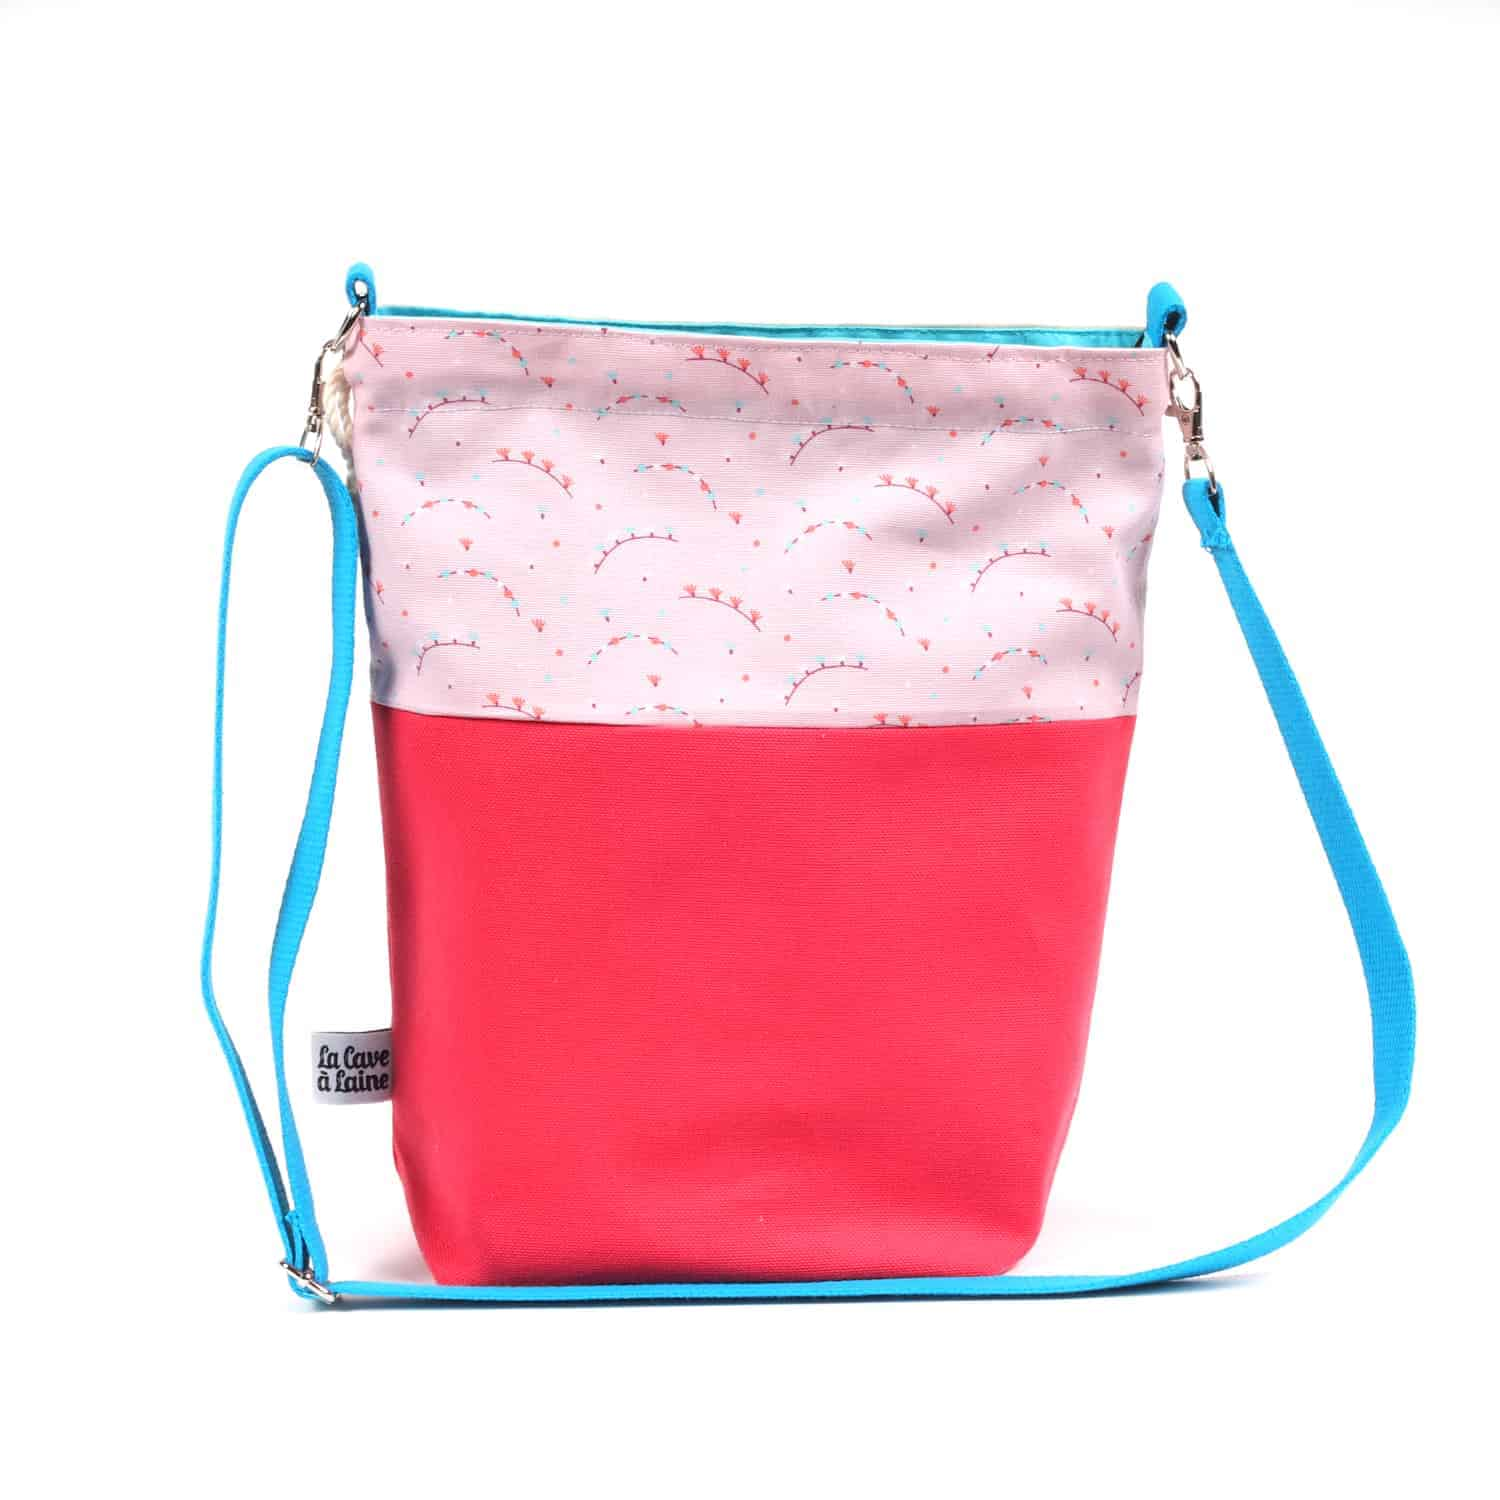 A two-toned pink bag with a blue strap.